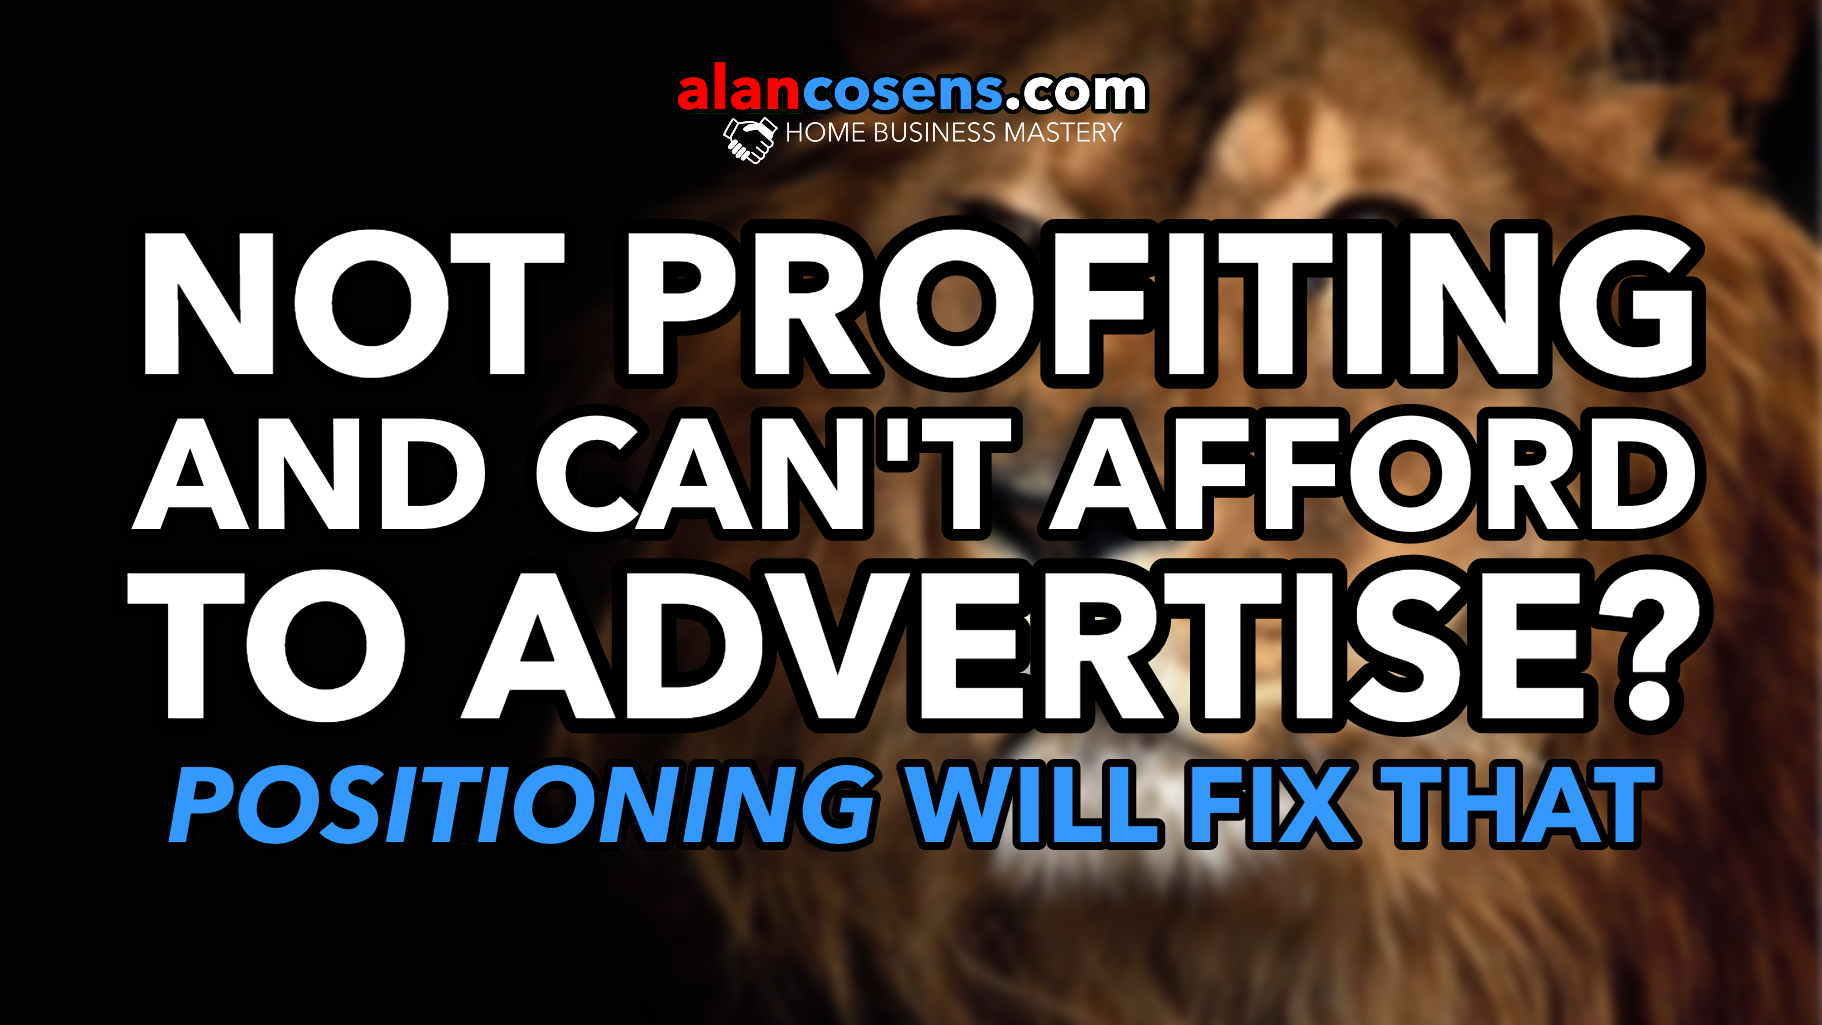 Not Profiting and Can't Afford Advertising?